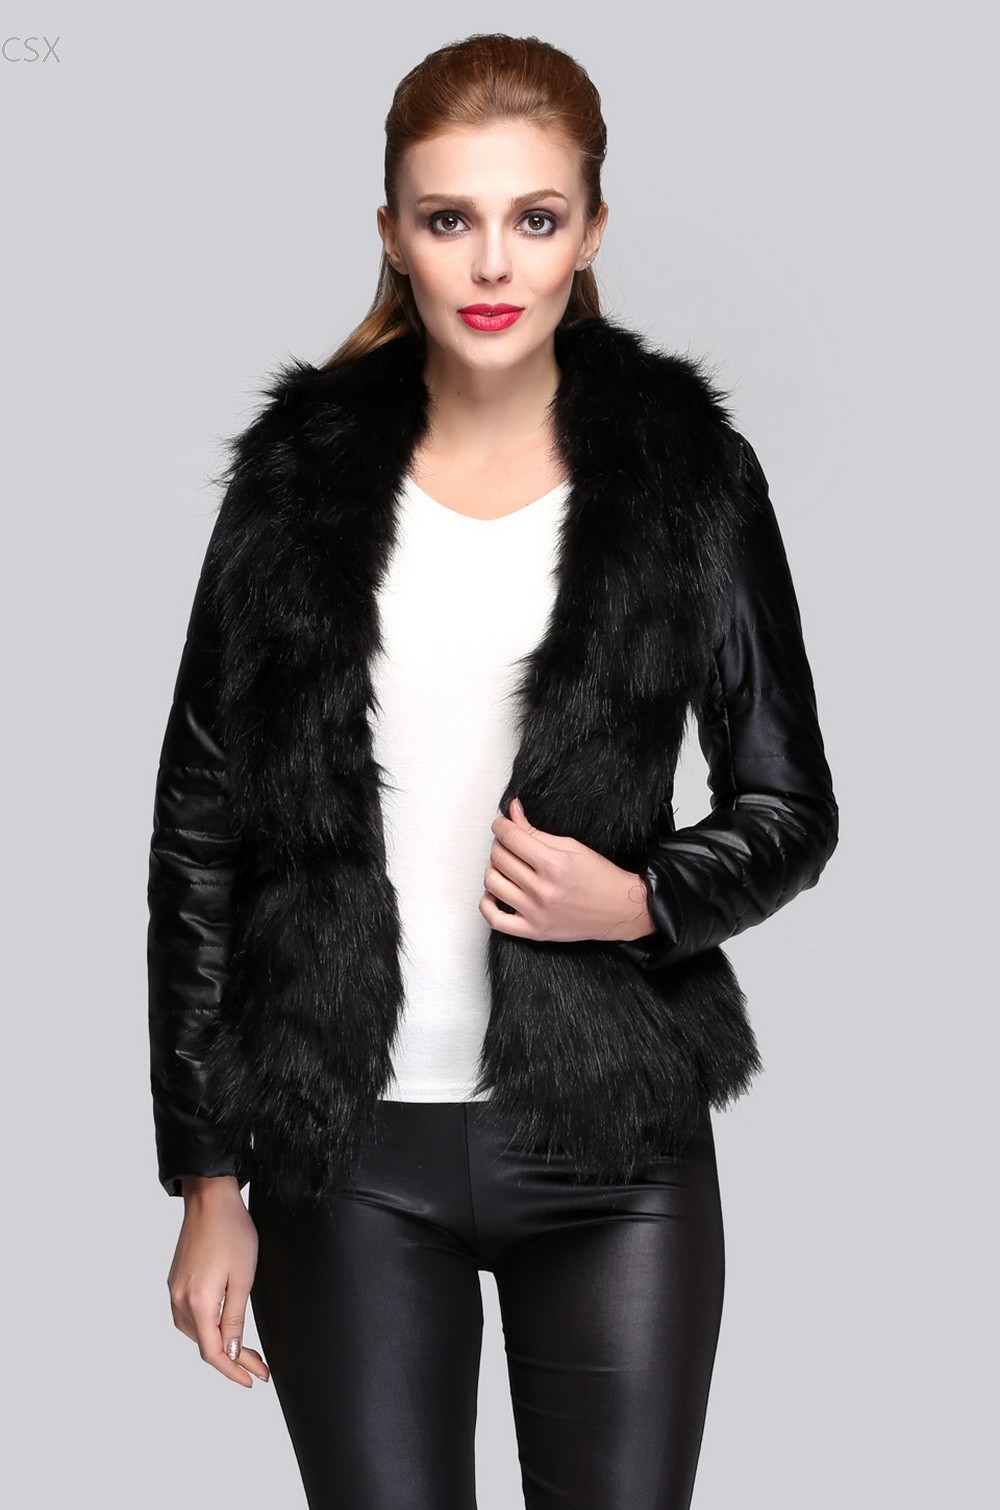 Alishebuy Hot Sale Luxury Womens Faux Fur Coat Leather -4571